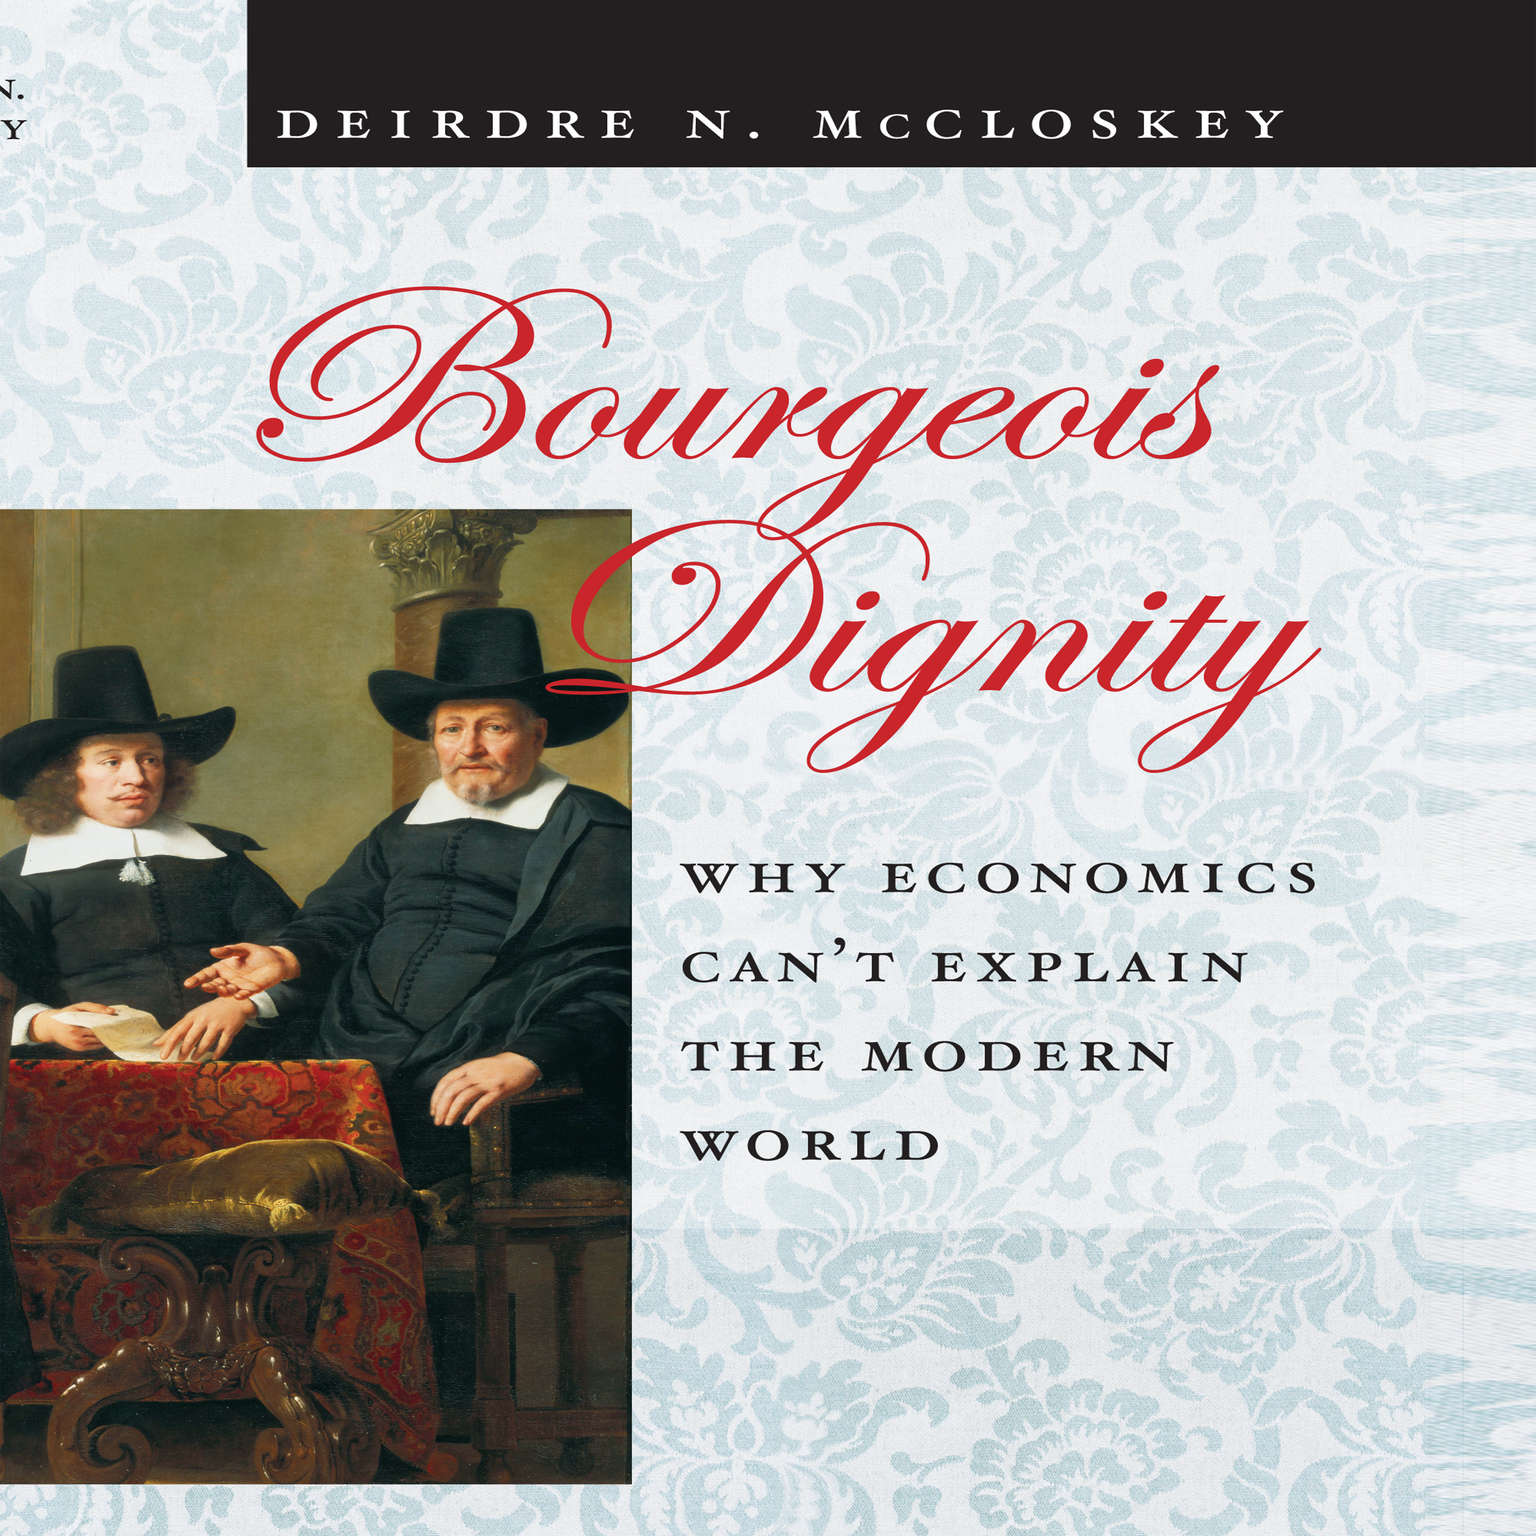 Bourgeois Dignity: Why Economics Cant Explain the Modern World Audiobook, by Deirdre N. McCloskey